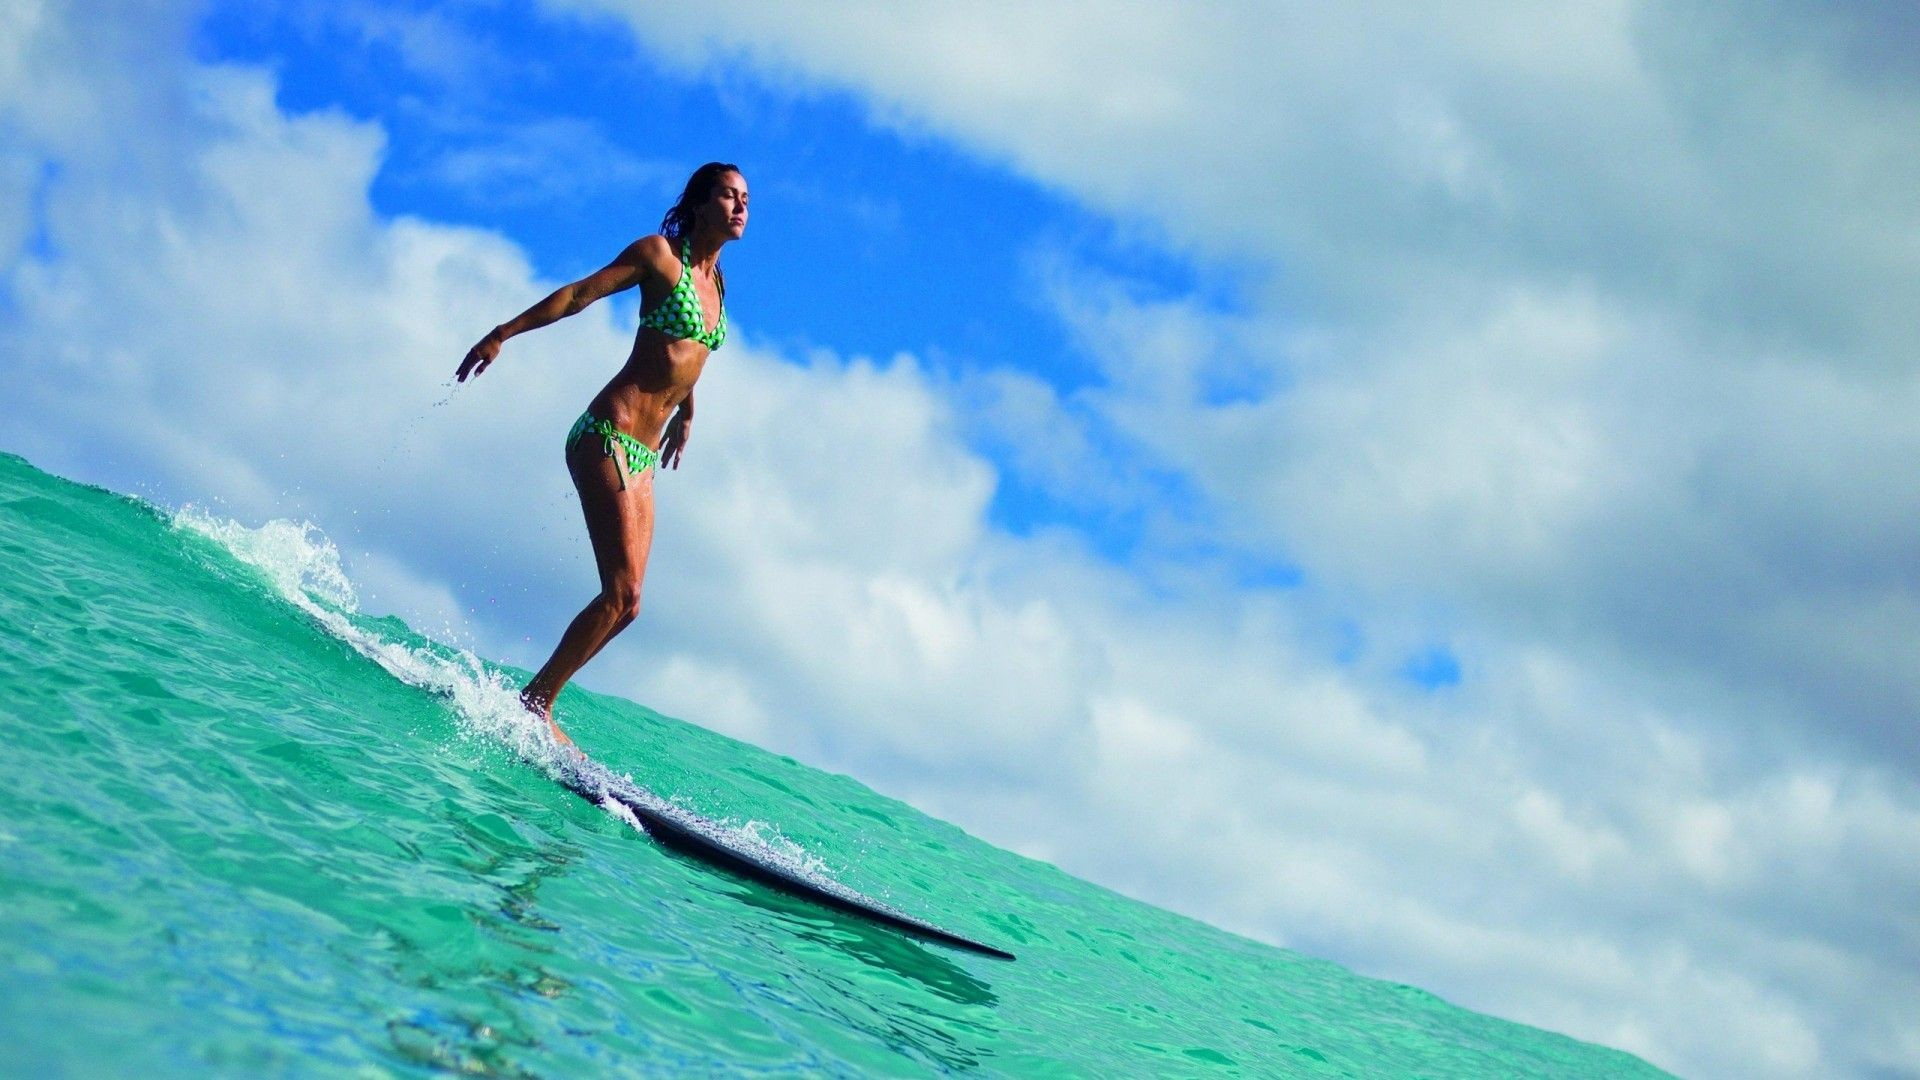 Res: 1920x1080, Surfing Girl HD Wallpaper 7 whb #SurfingGirlHDWallpaper #SurfingGirl # Surfing #Girls #babes